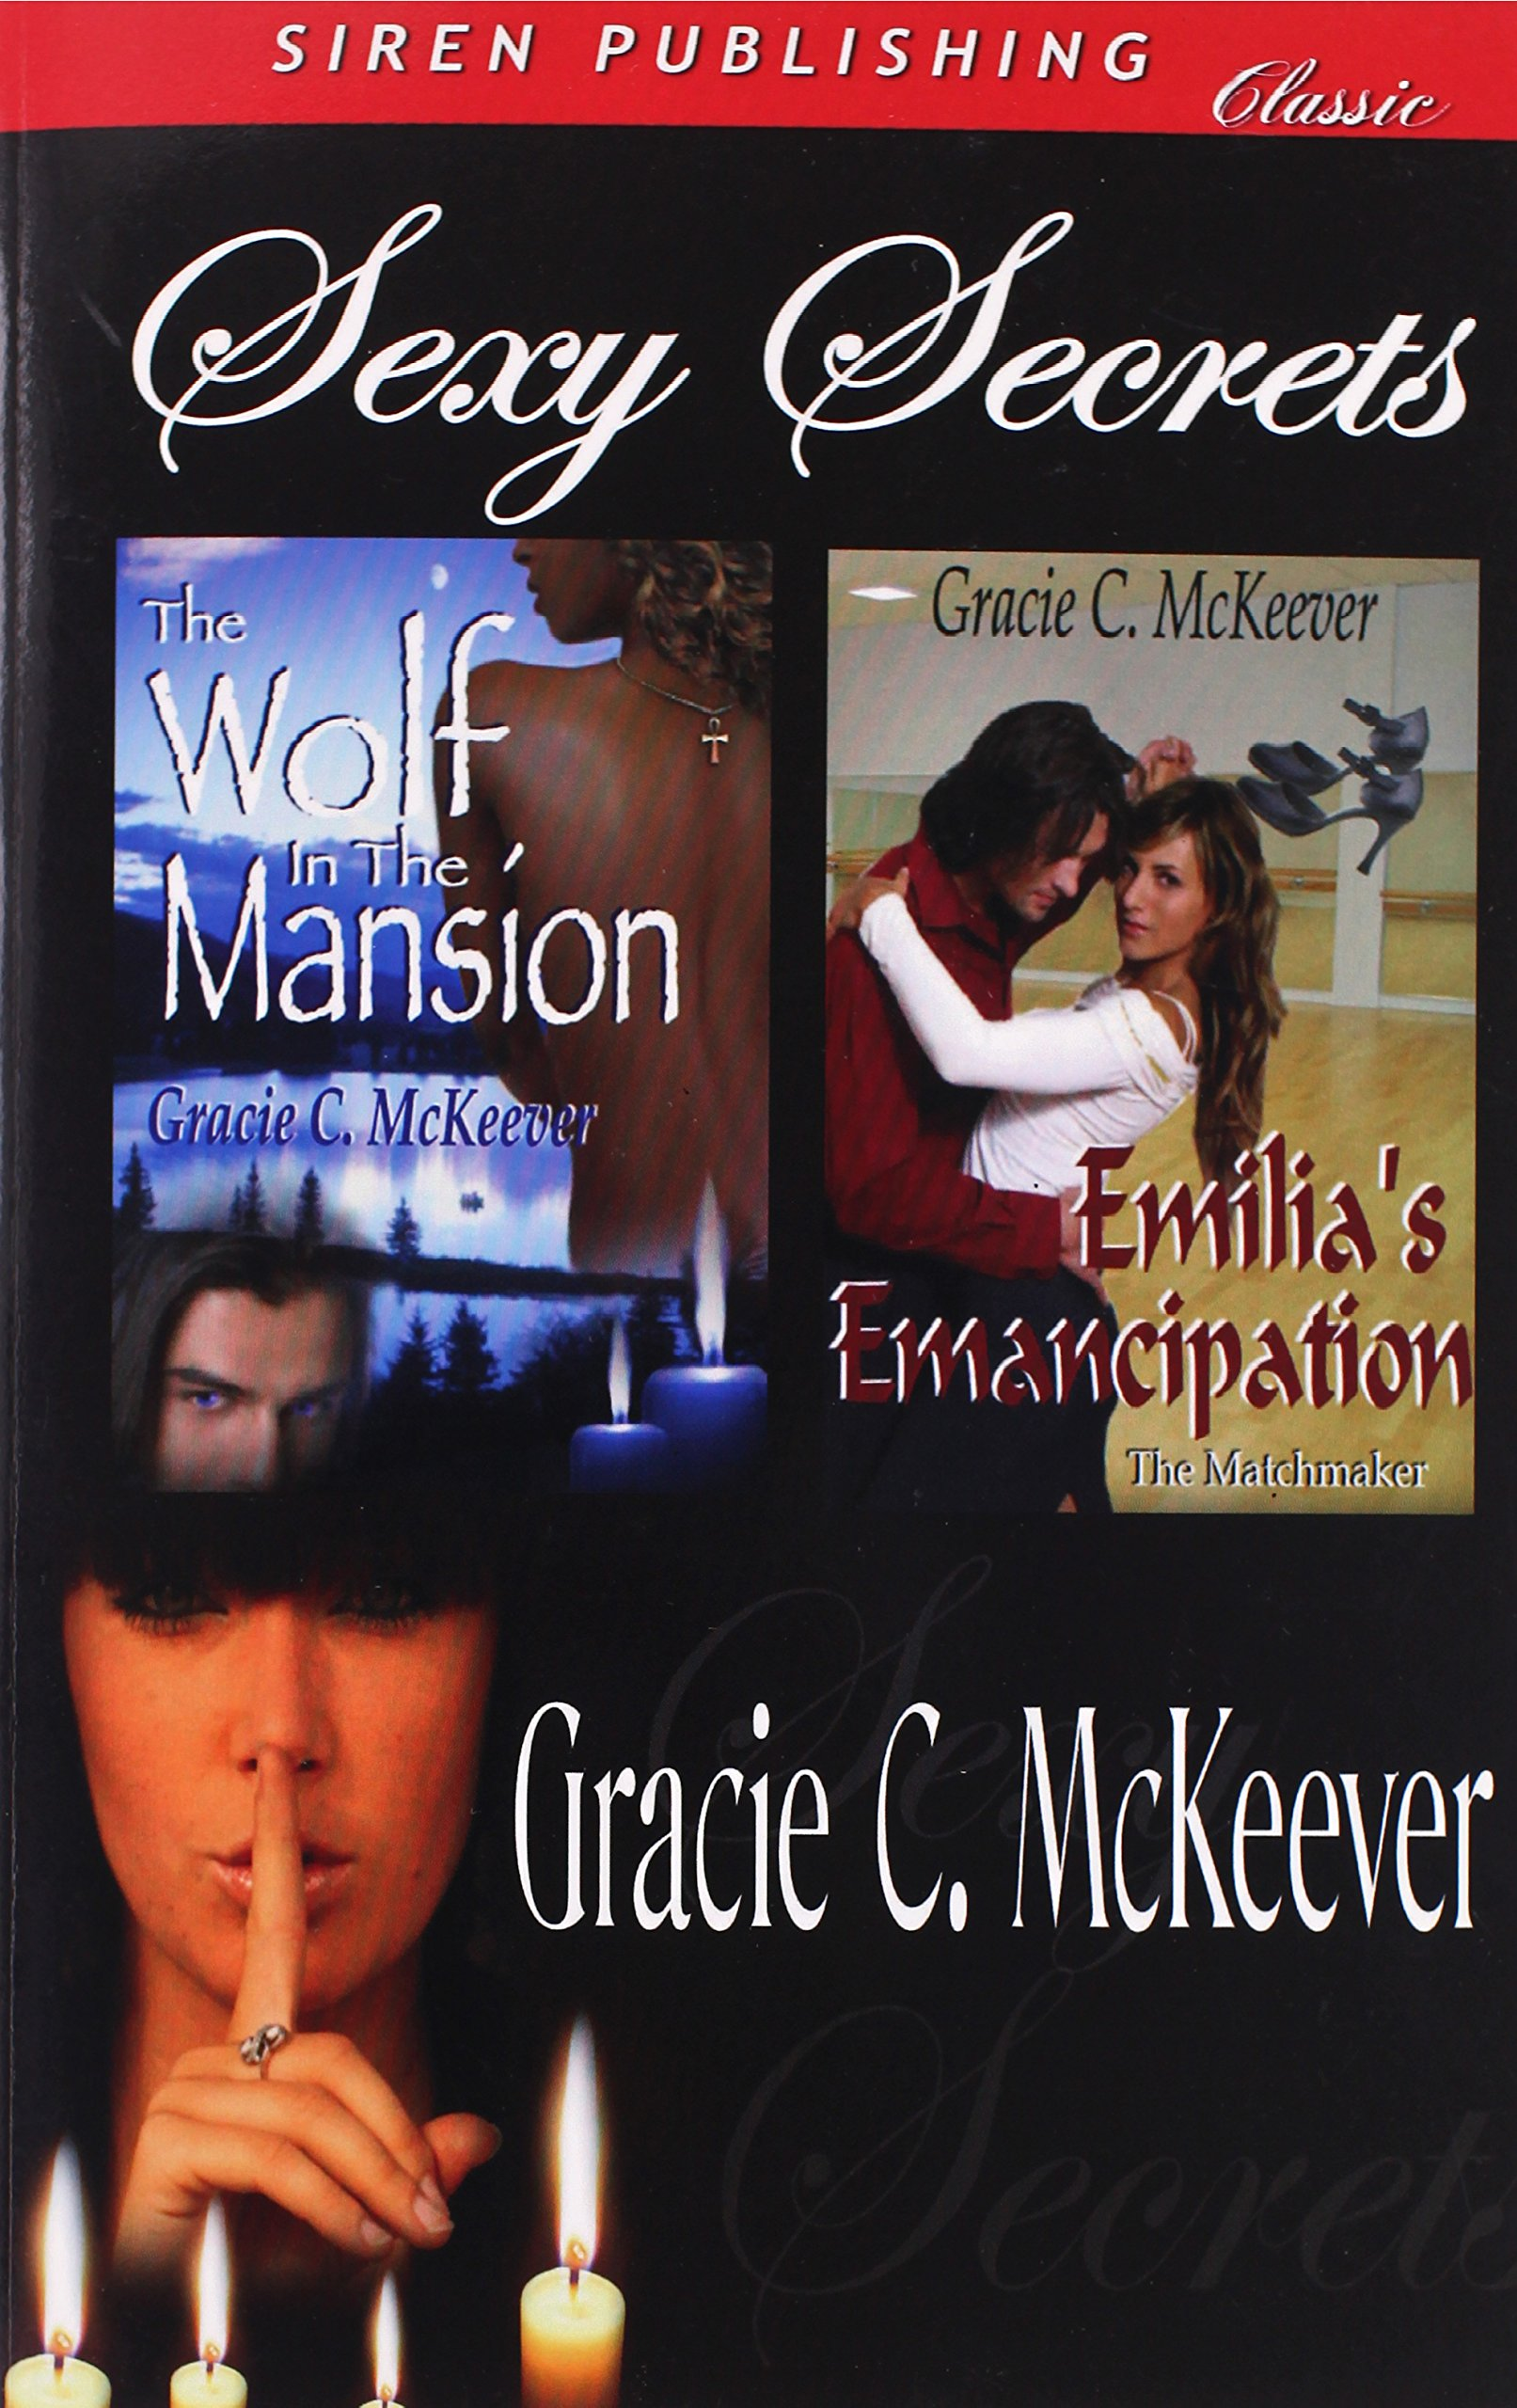 Sexy Secrets [The Wolf in the Mansion: Emilia's Emancipation] (Siren Publishing Classic) pdf